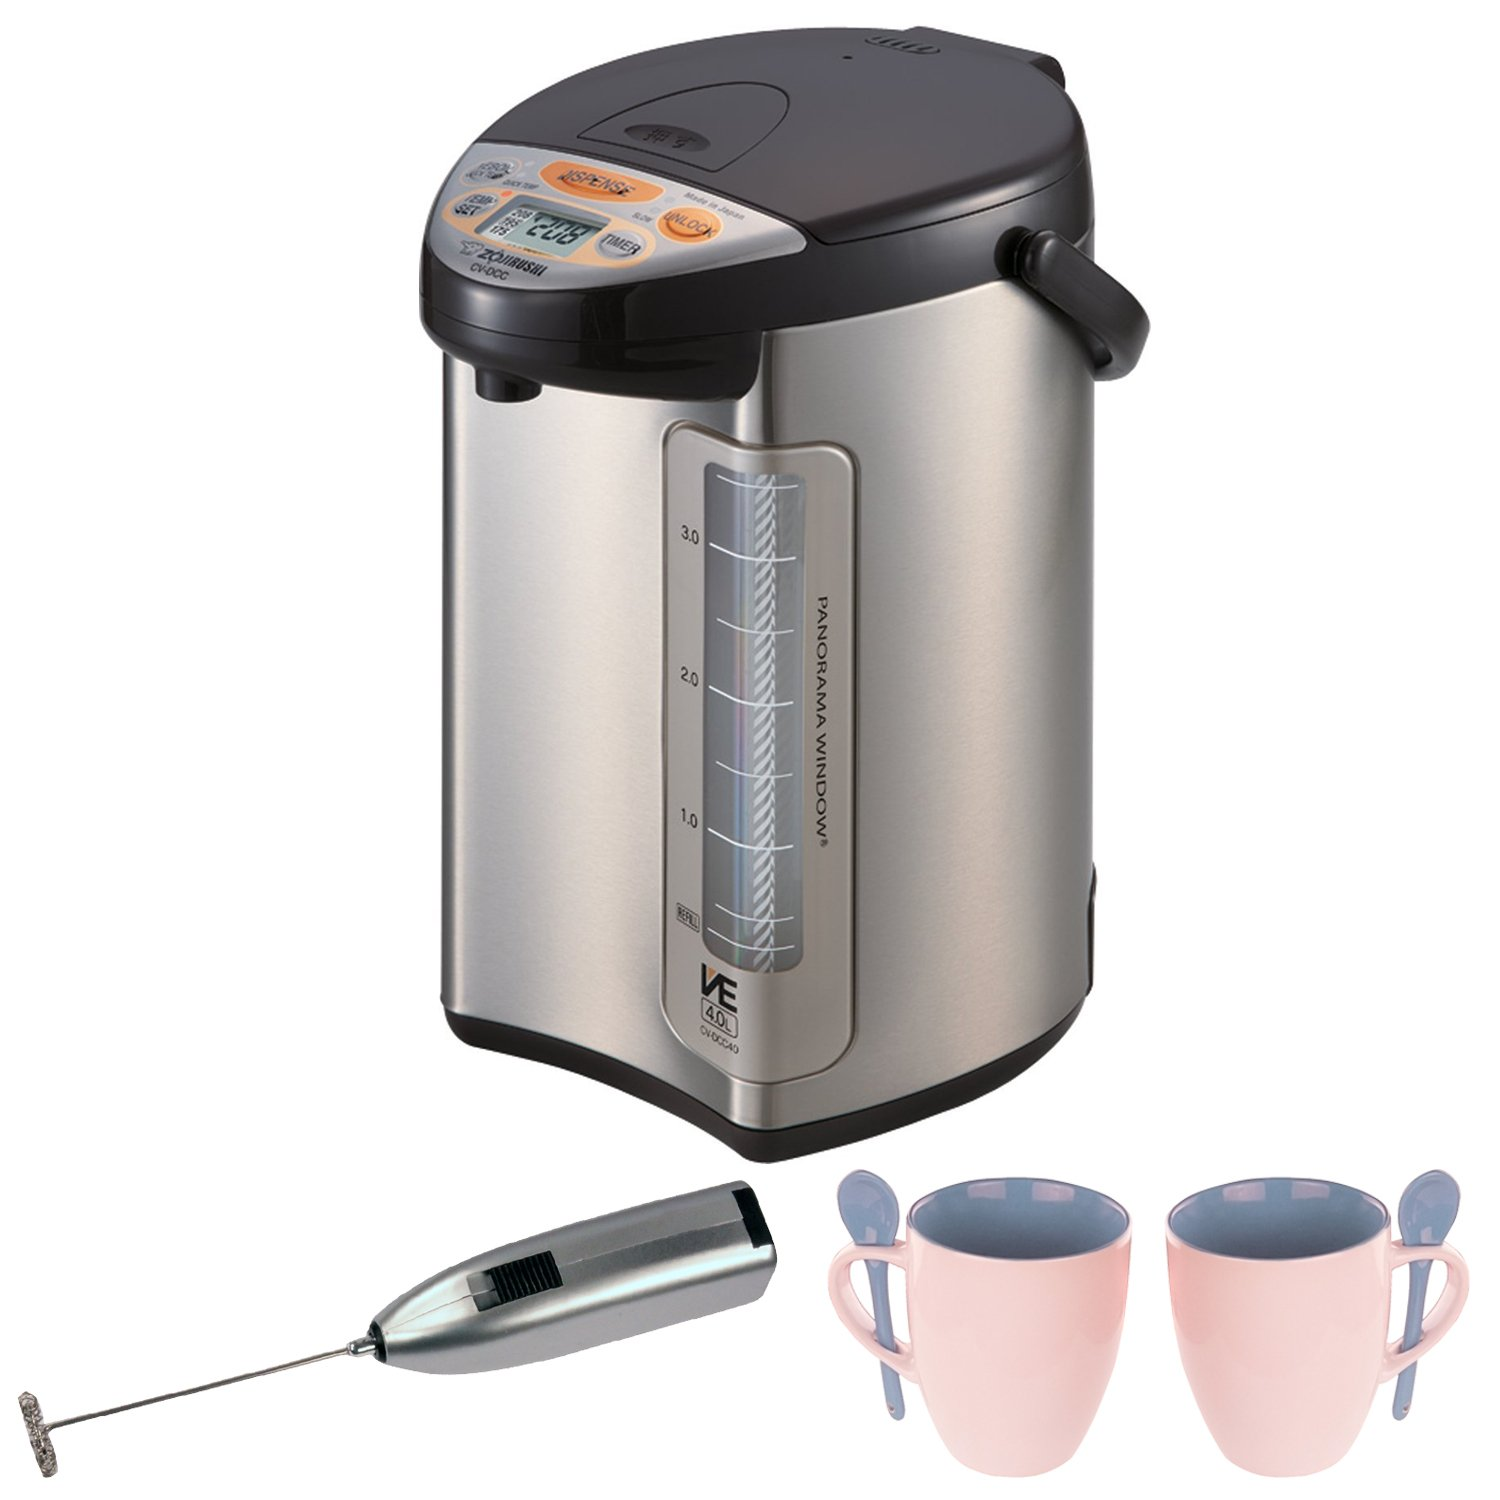 Zojirushi 586361-CV-DCC40XT America Corporation Ve Hybrid Water Boiler And Warmer, 4-Liter, Stainless Dark Brown Includes Milk Frother and Two Mugs with Spoons by Zojirushi (Image #1)